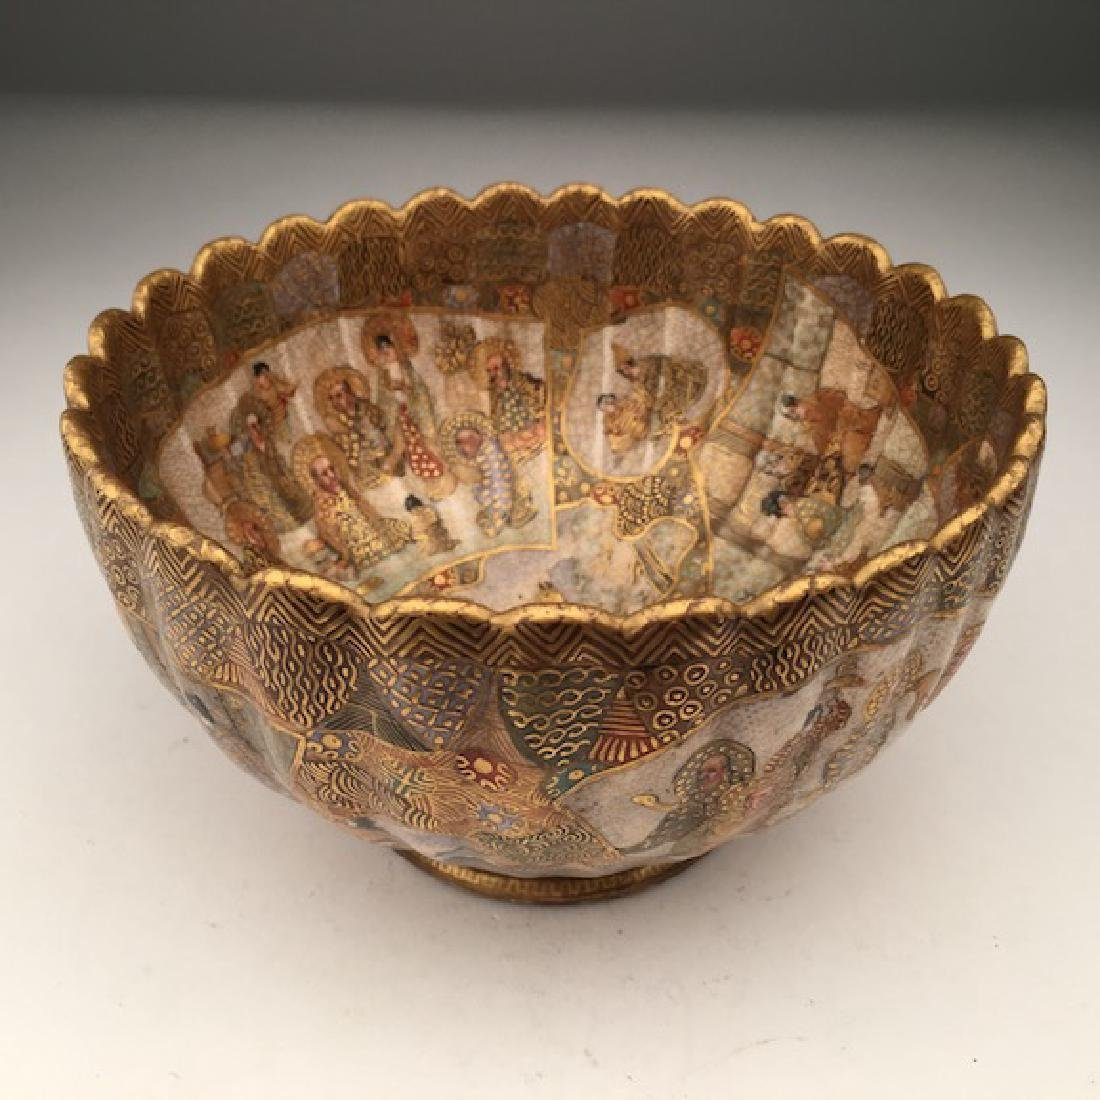 A very well done Japanese Satsuma scalloped edge bowl.